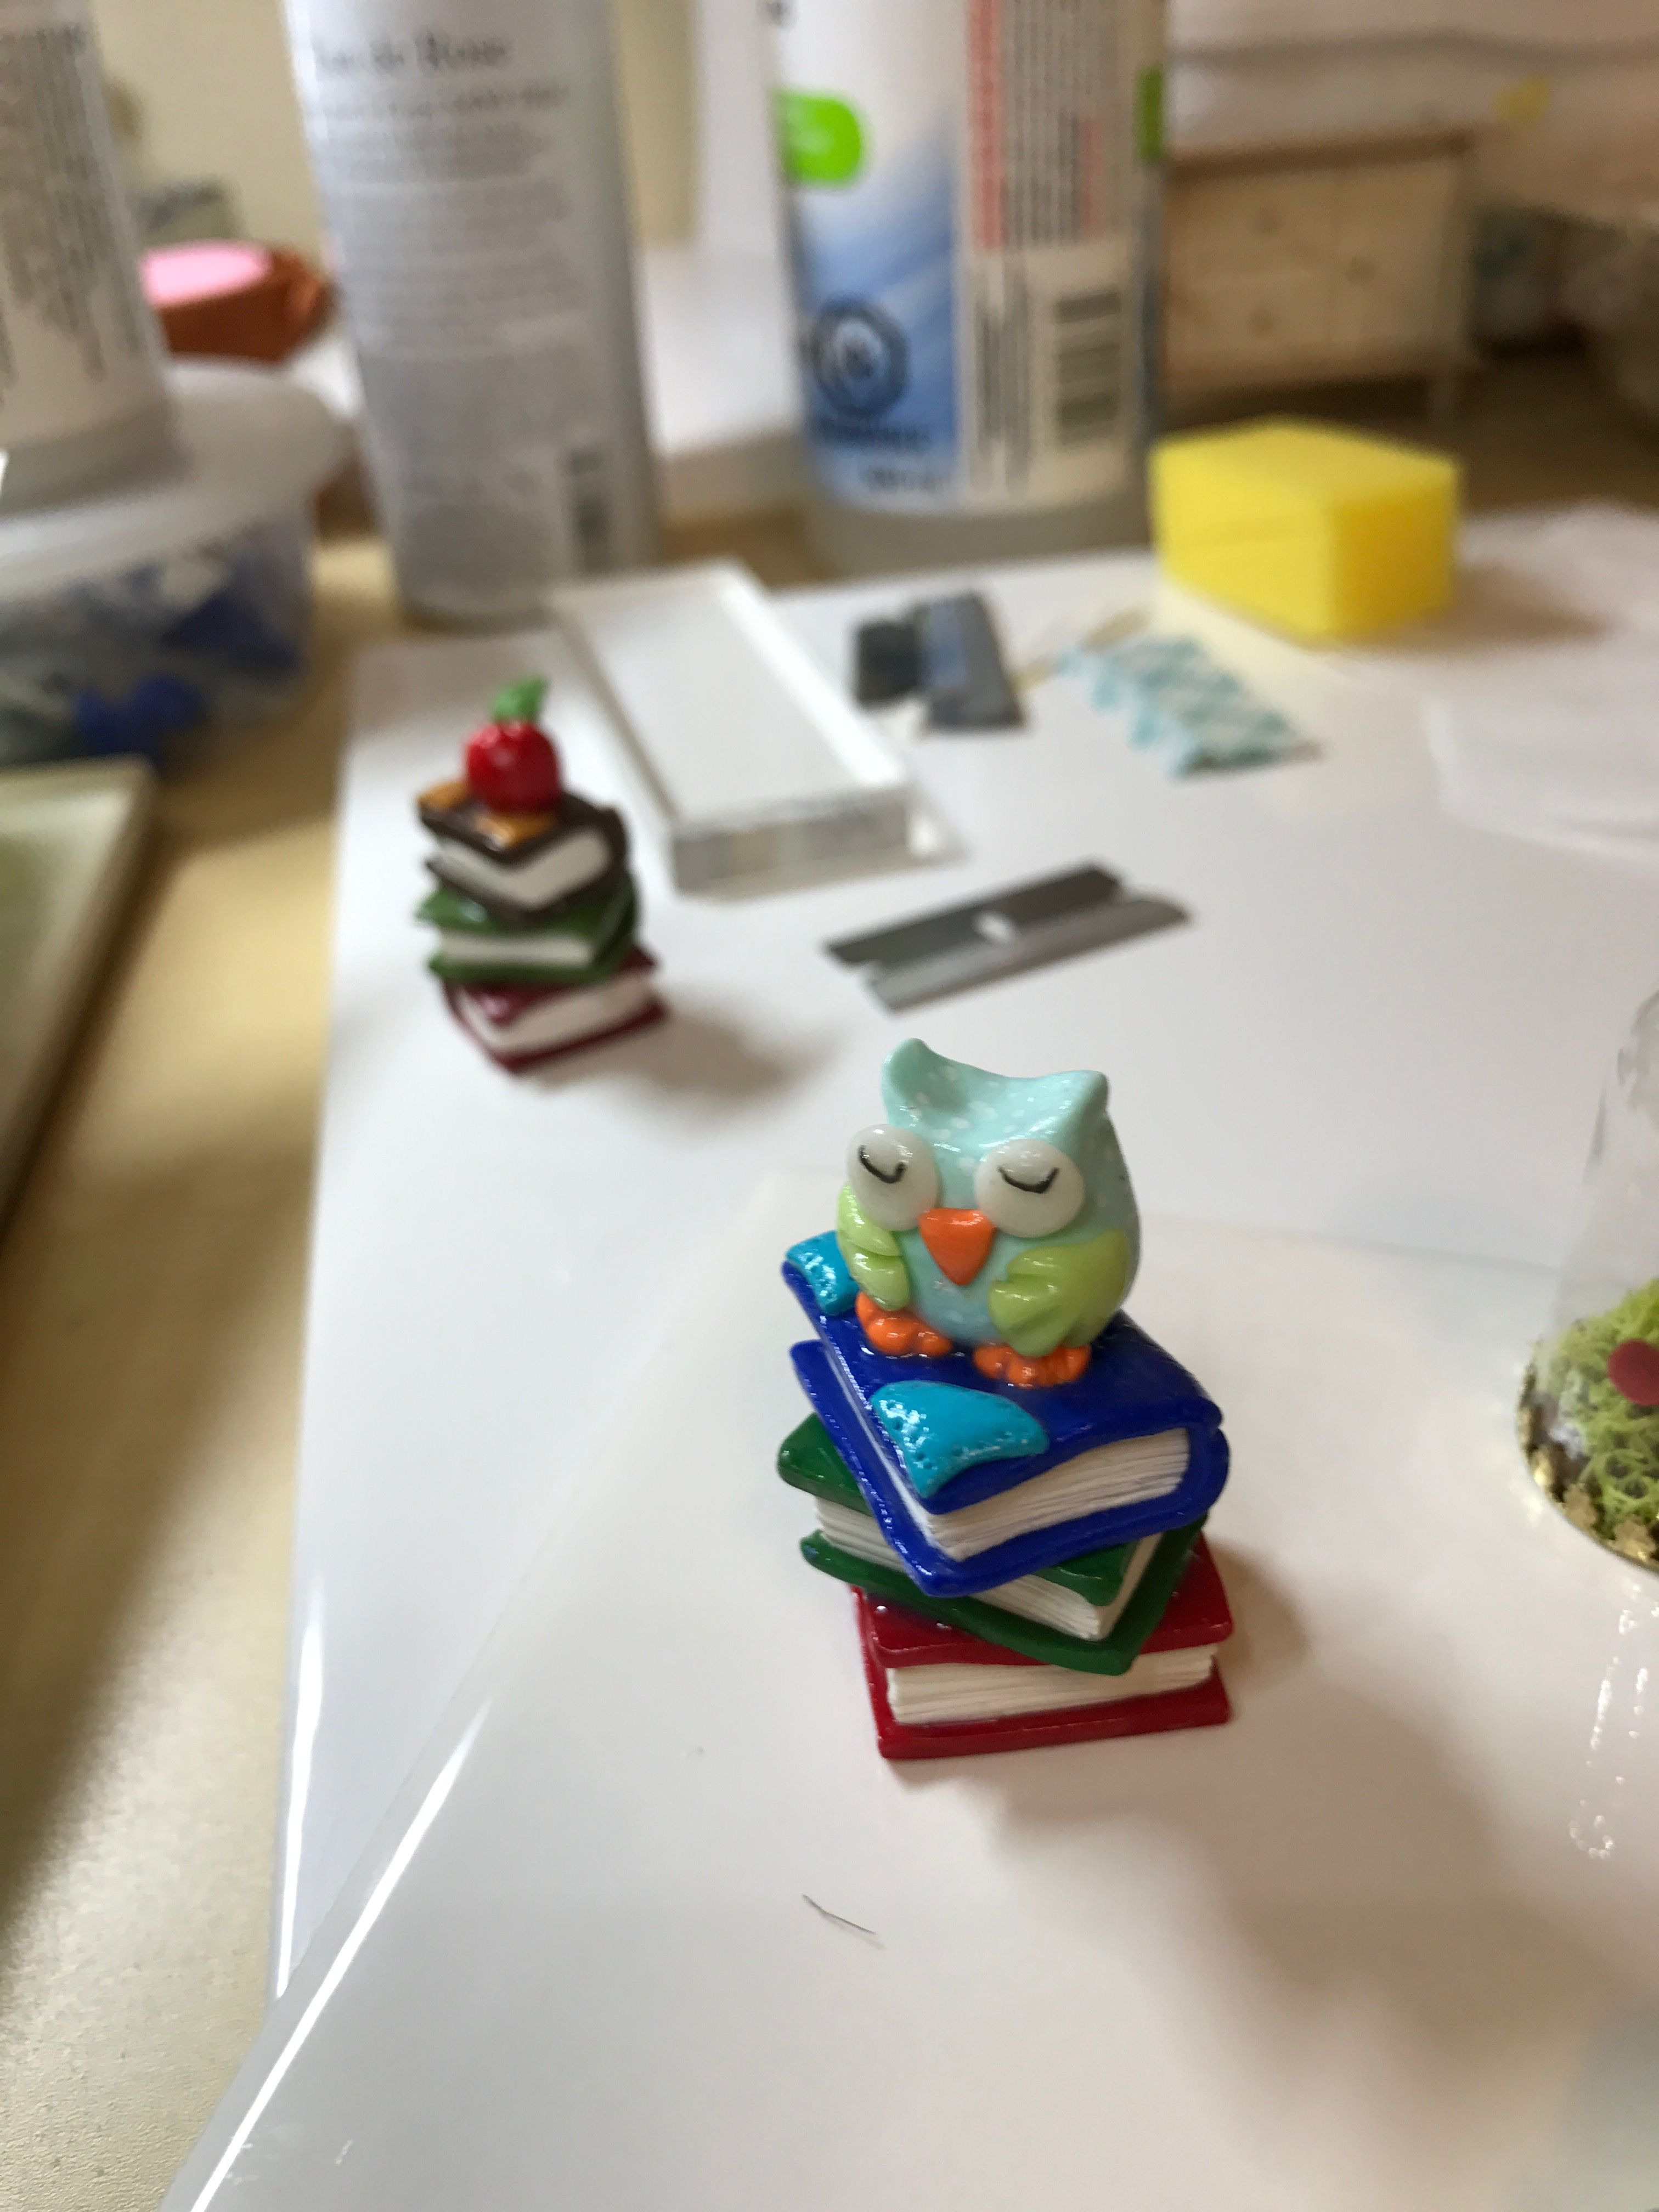 Polymer clay is so fun...I really enjoy making tangible items.